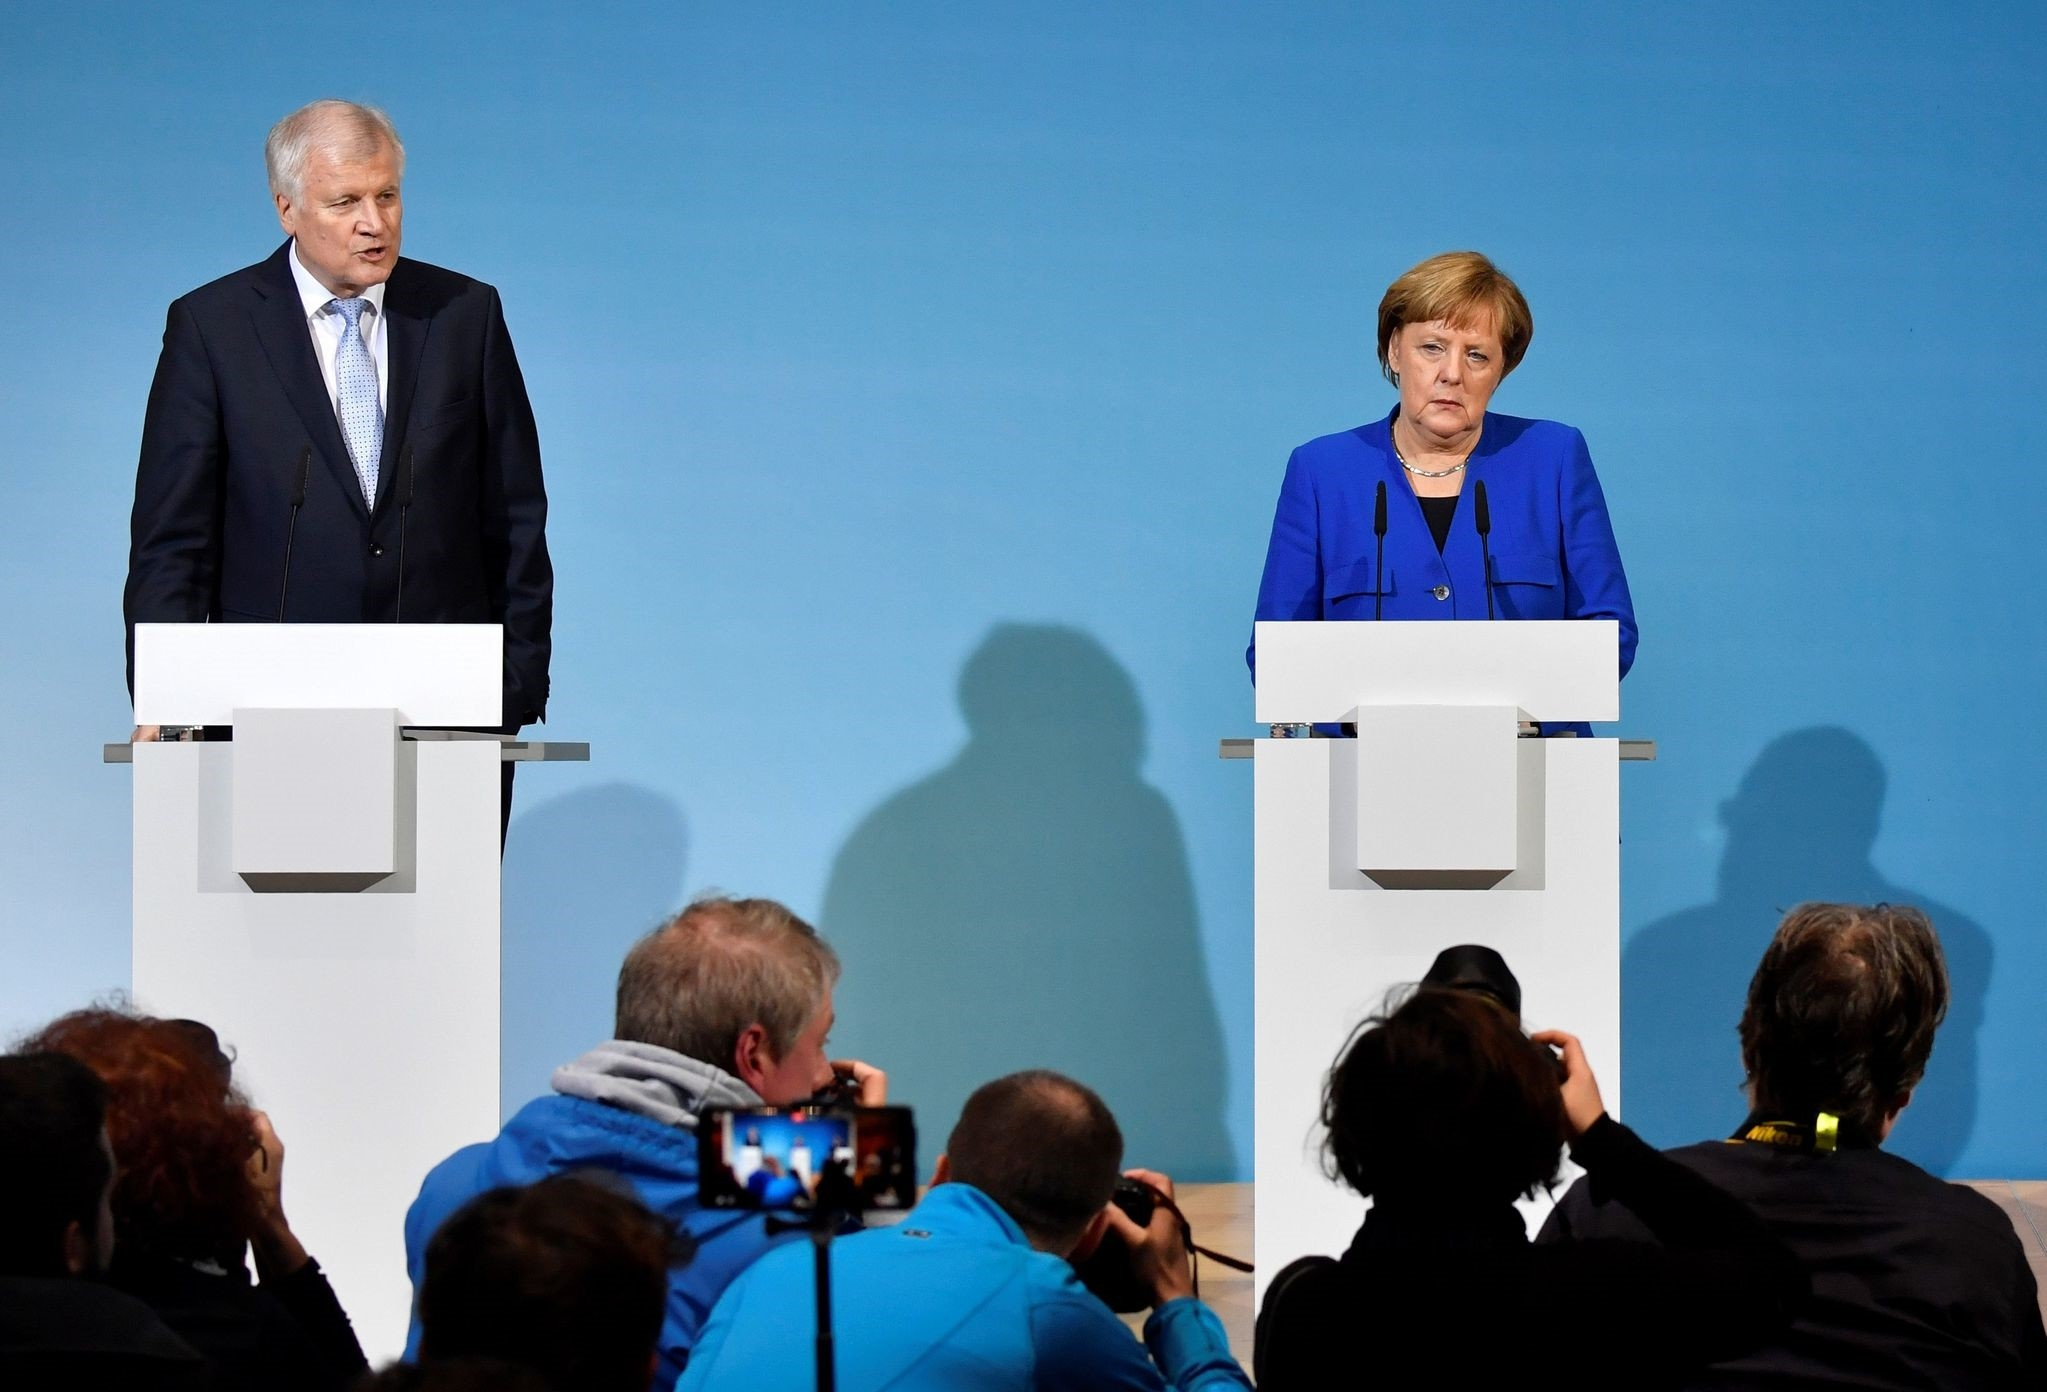 State Premier for the state of Bavaria and leader of the Christian Social Union (CSU) Horst Seehofer and German Chancellor Angela Merkel attend a press conference after talks to form a new government, Berlin, Jan. 12.